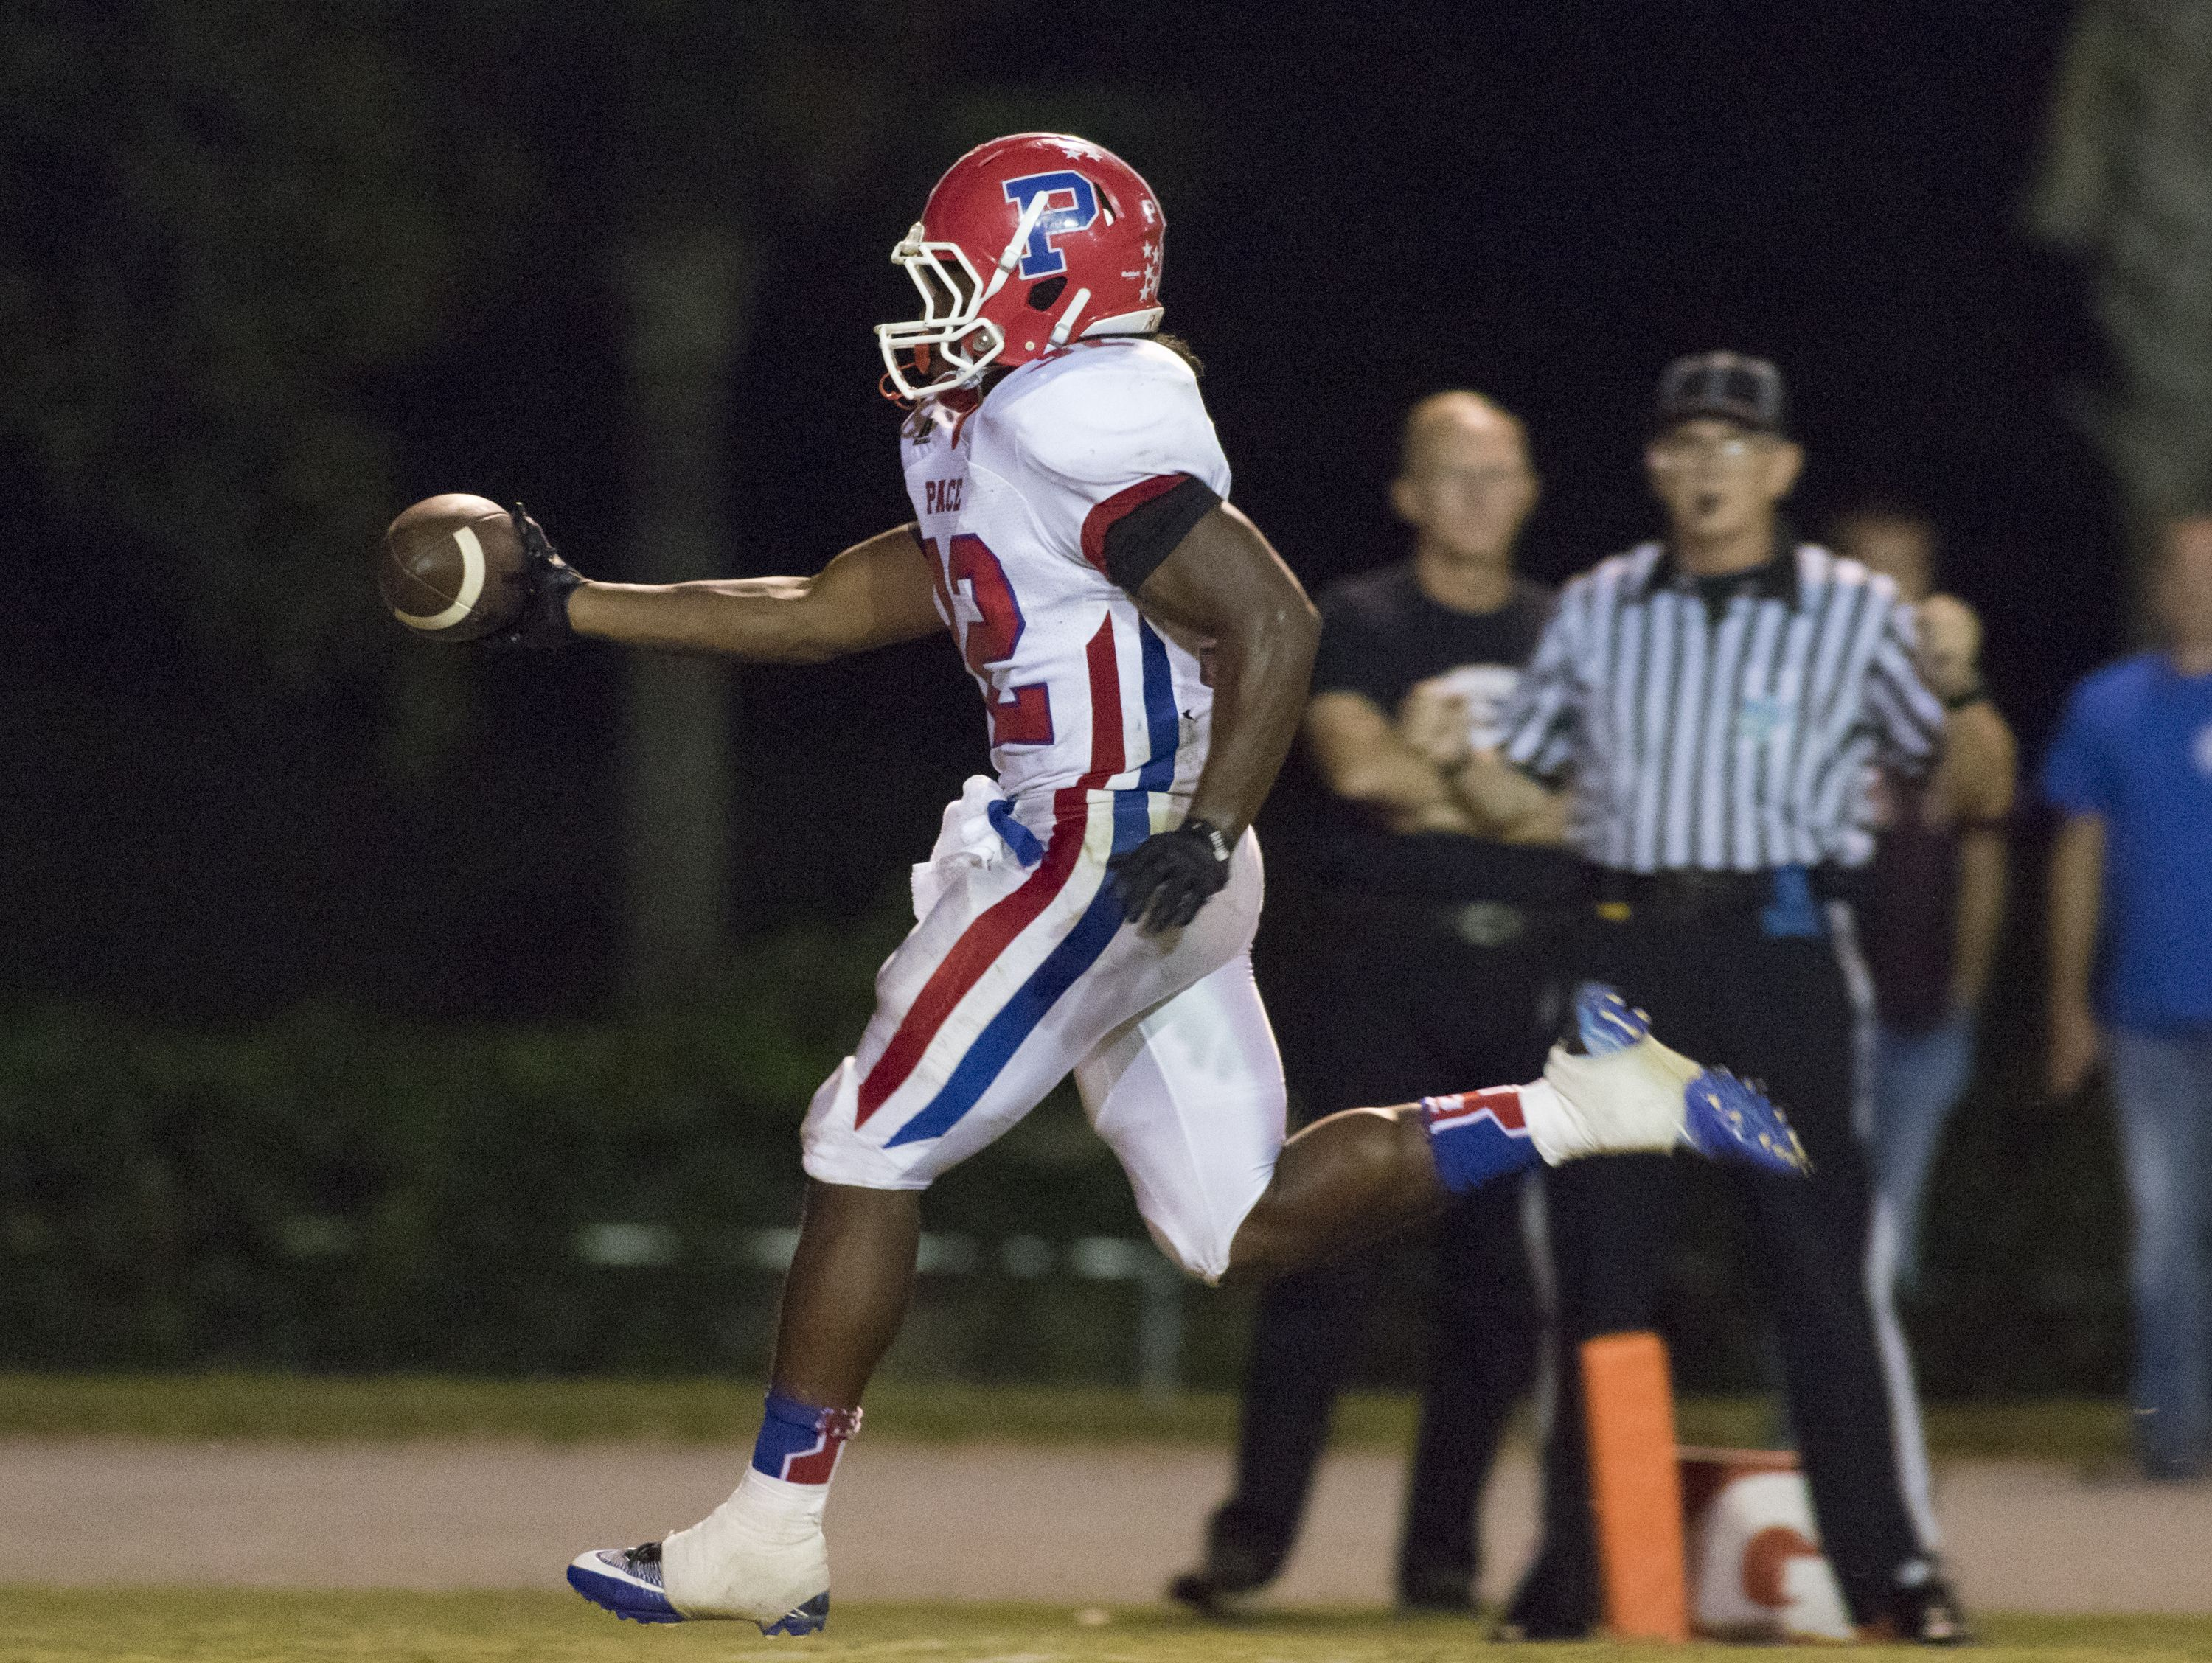 Anthony Johnson Jr. (32) walks into the endzone during the Pace vs Tate football game at Tate High School on Friday, October 7, 2016.